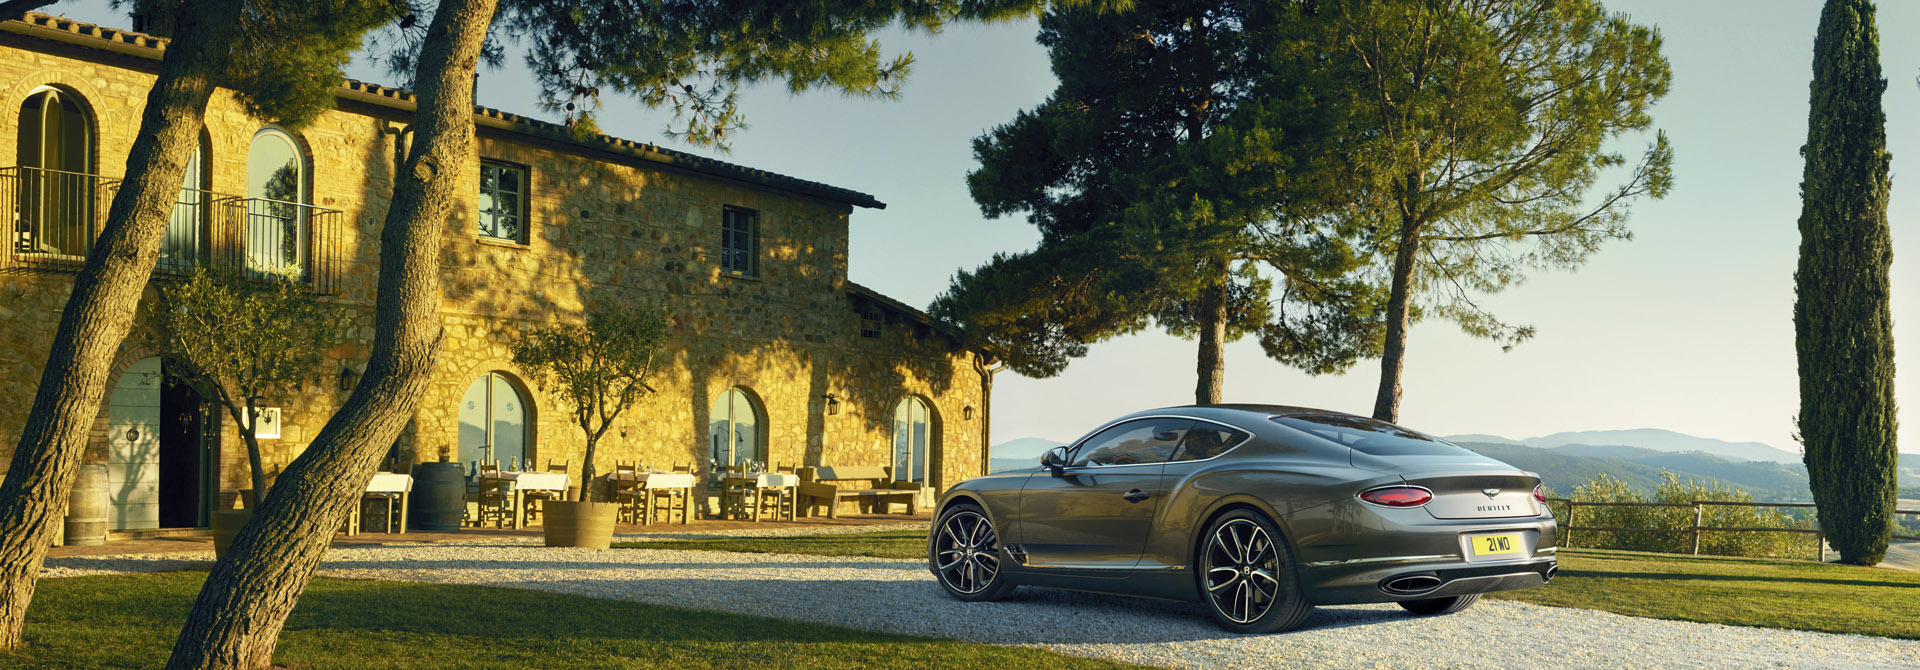 New-Continental-GT-2017-in-Tungsten-metallic-grey-colour-parked-by-a yellow-brick-building-in-the-countryside-surrounded-by-trees.